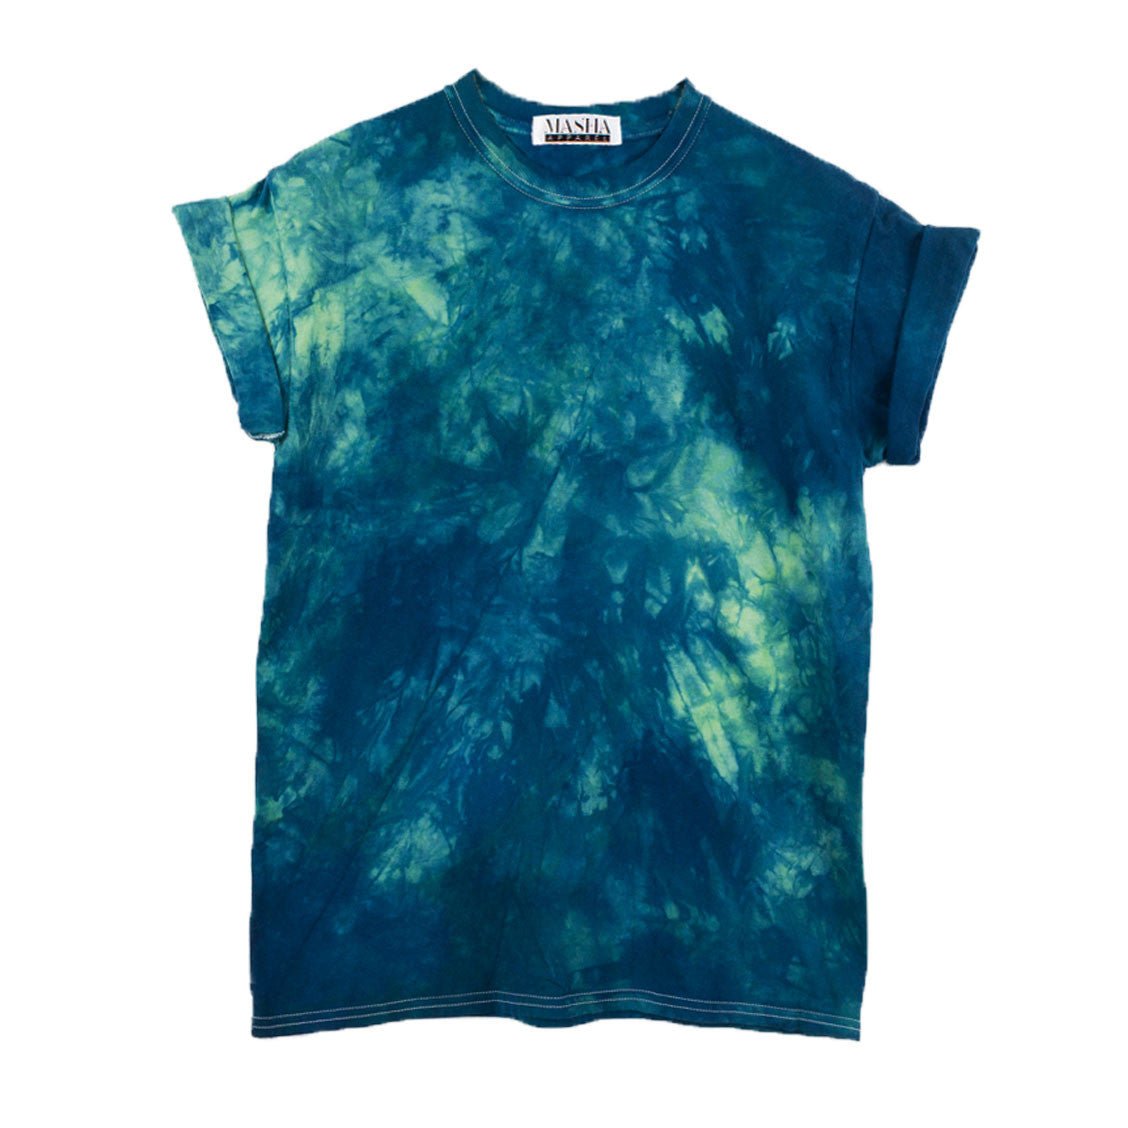 Super Shop for Unisex Tie dye T-shirts at Masha Apparel: 20 year old  NZ95